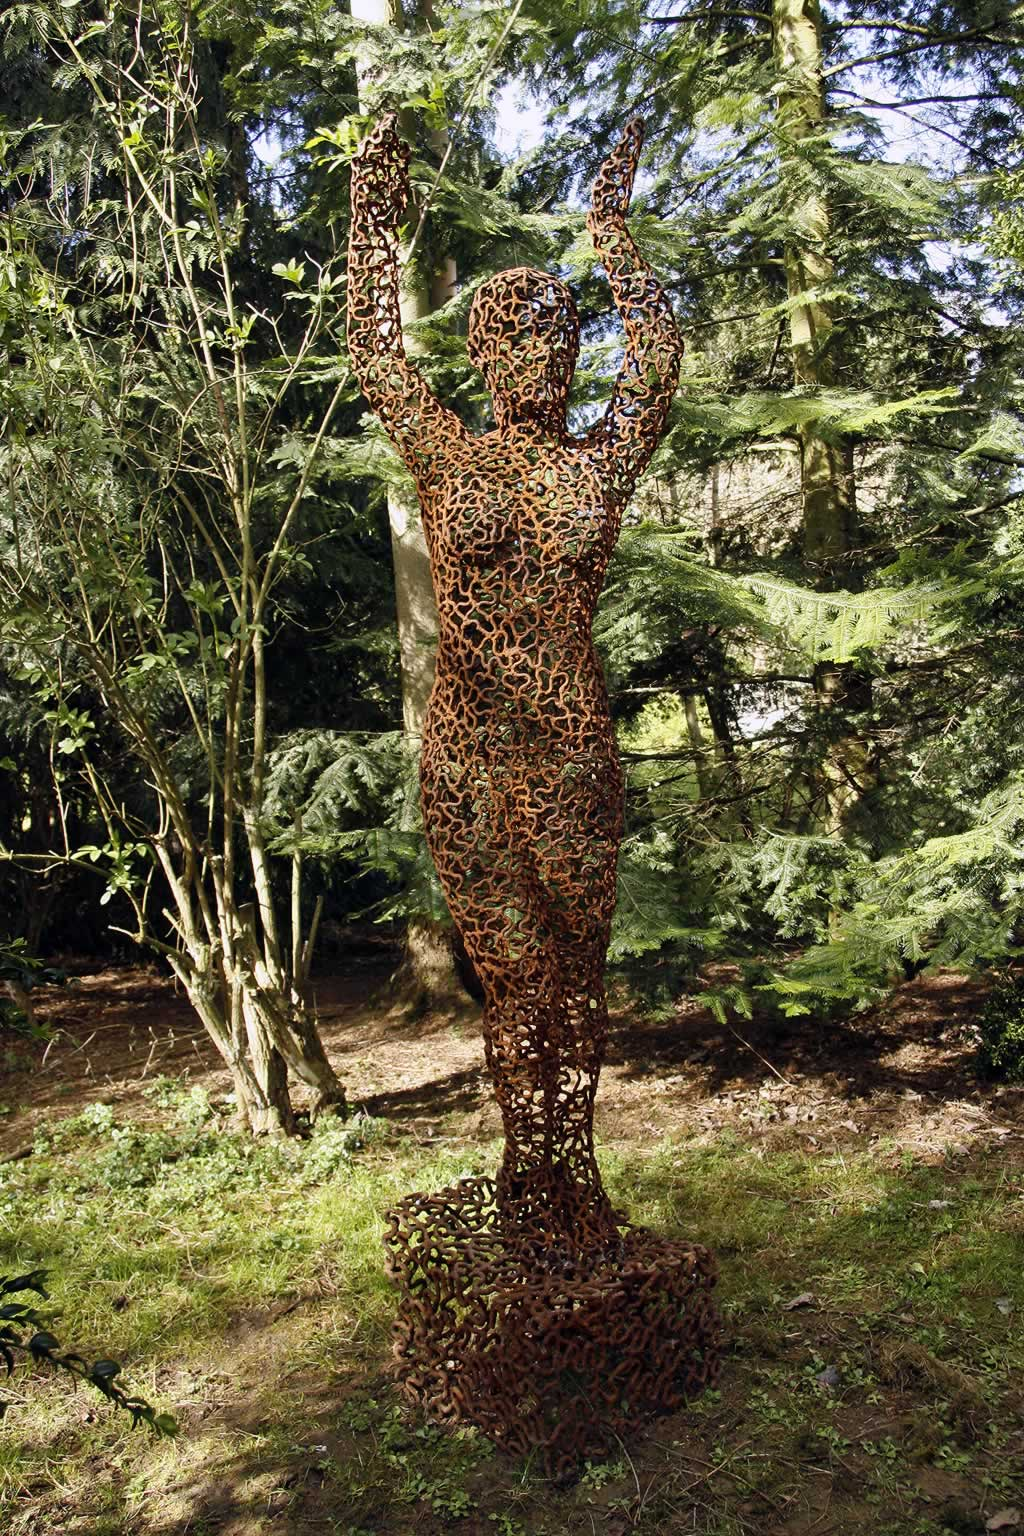 Eve at Burghley House (abstract figurative sculpture) by sculptor Ian Campbell-Briggs